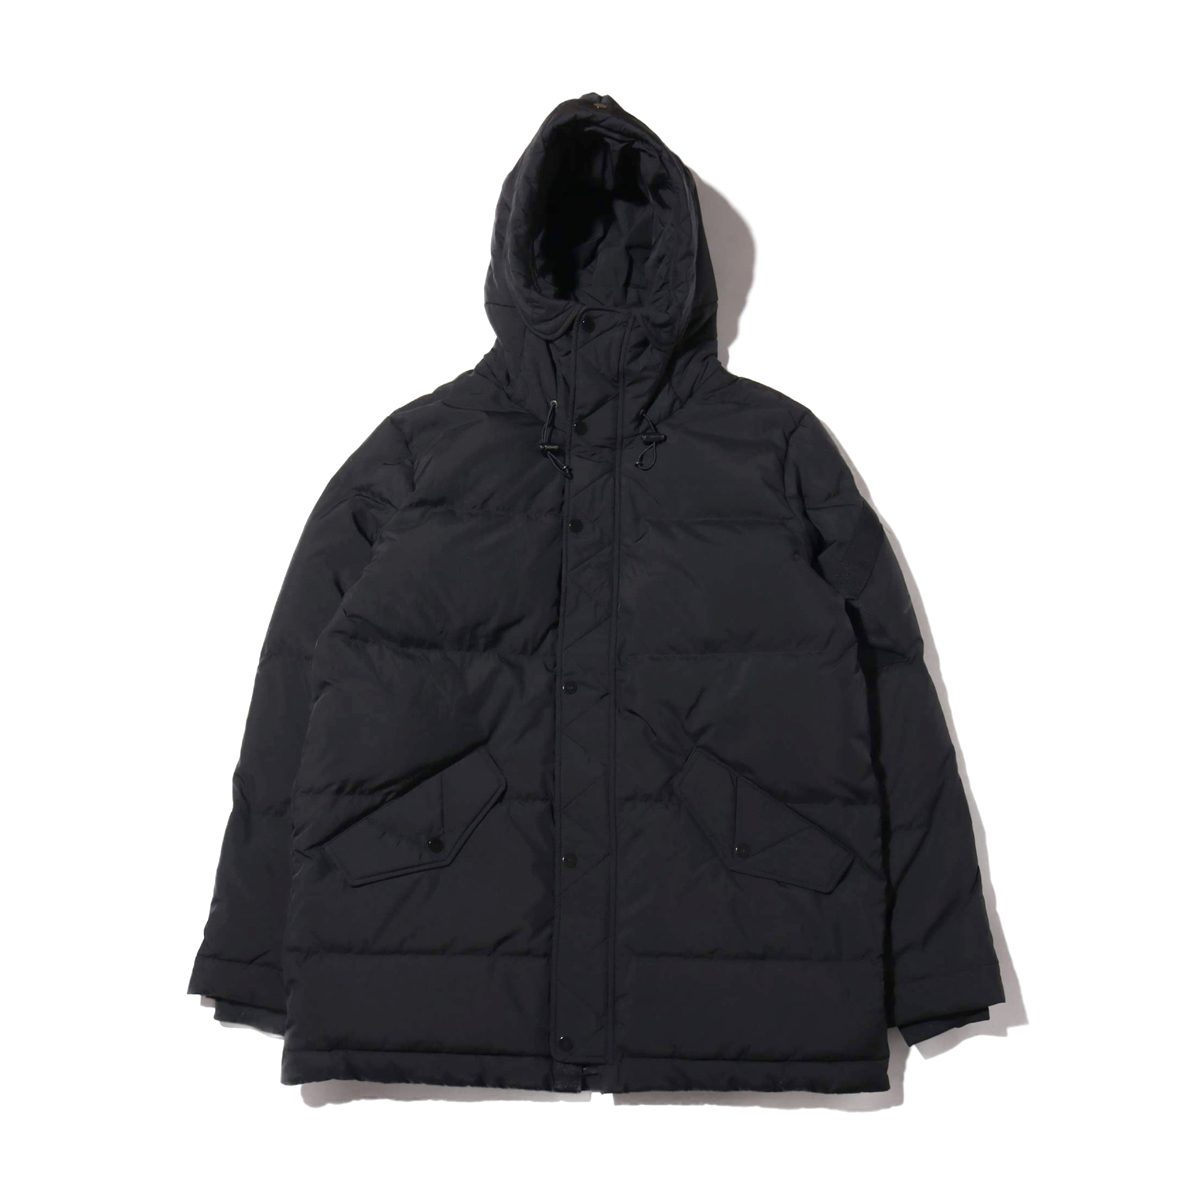 NIKE M J WINGS DOWN PARKA(ナイキ ジョーダン WINGS DOWN パーカー)BLACK/BLACK/BLACK【メンズ パーカー】19HO-S